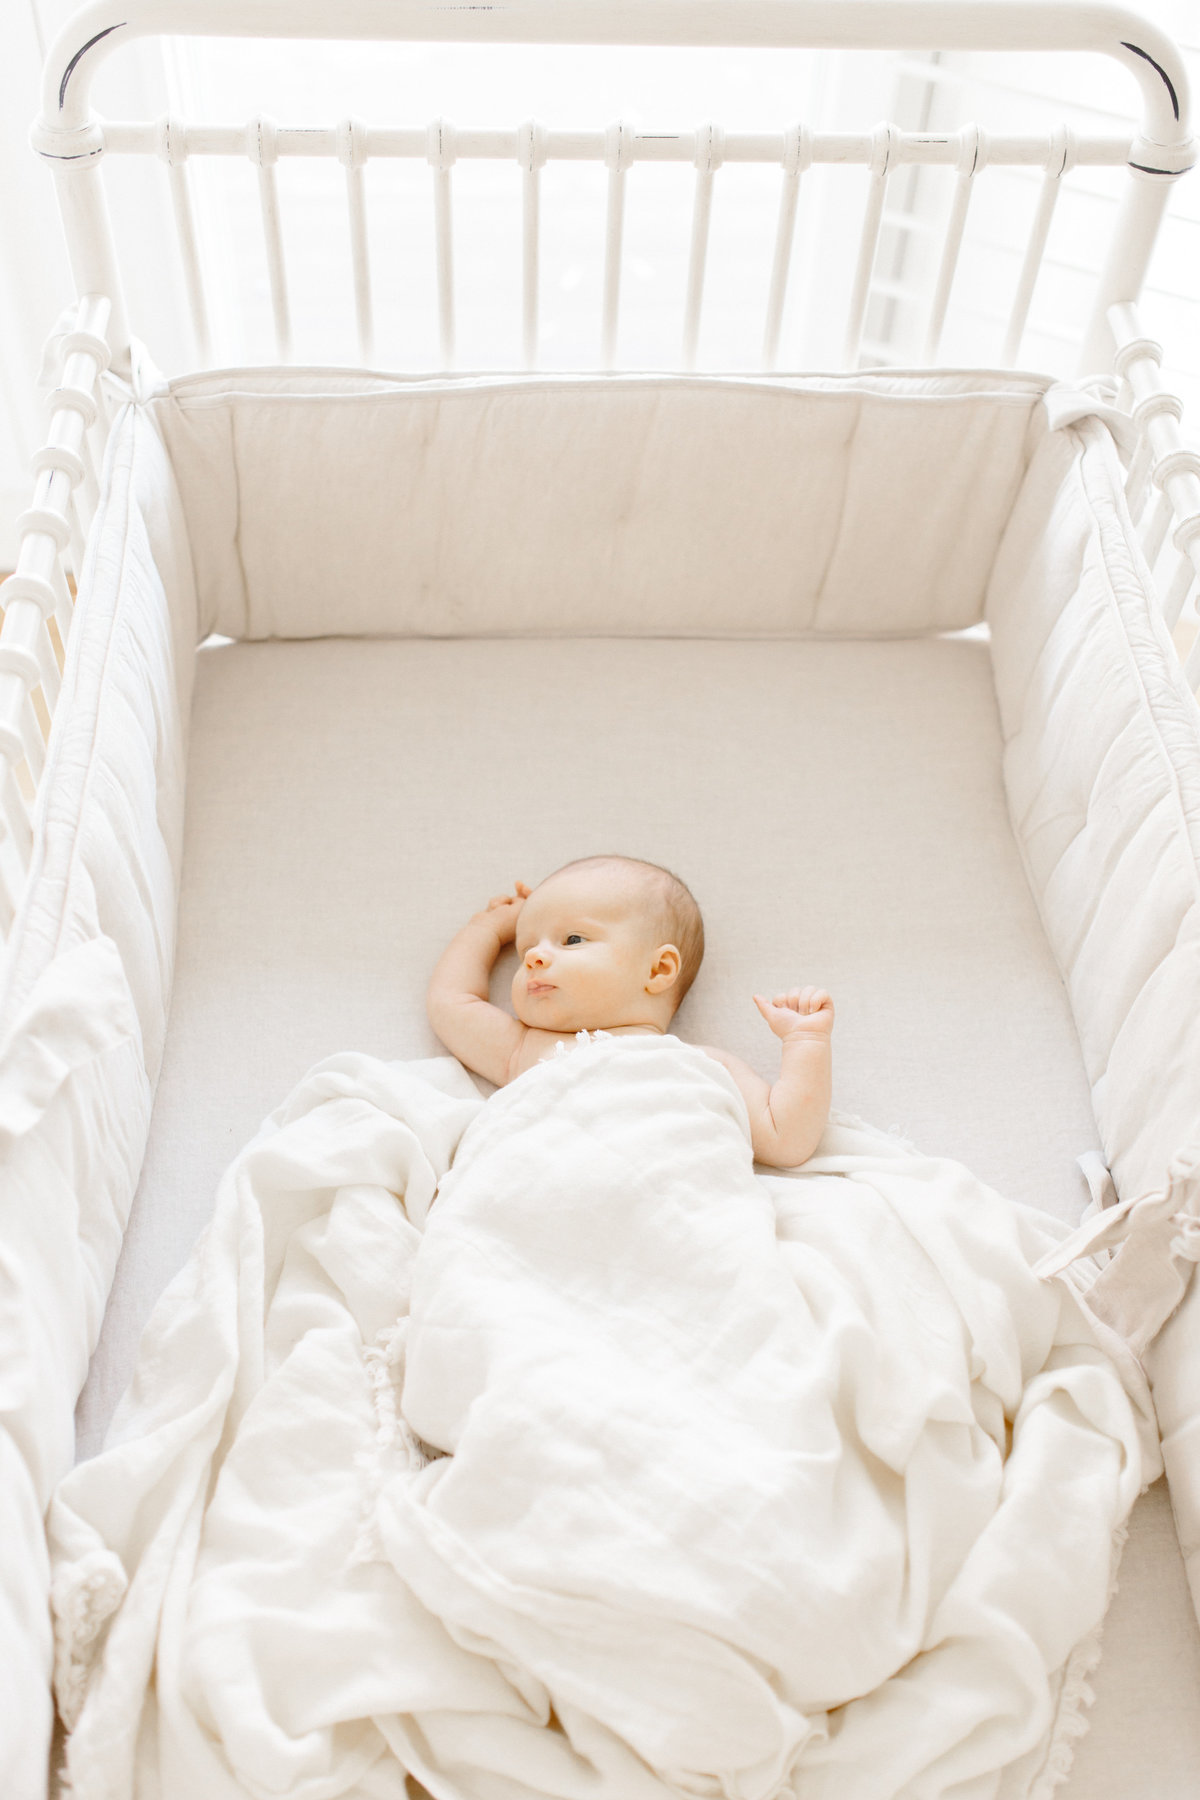 Baby laying in crib